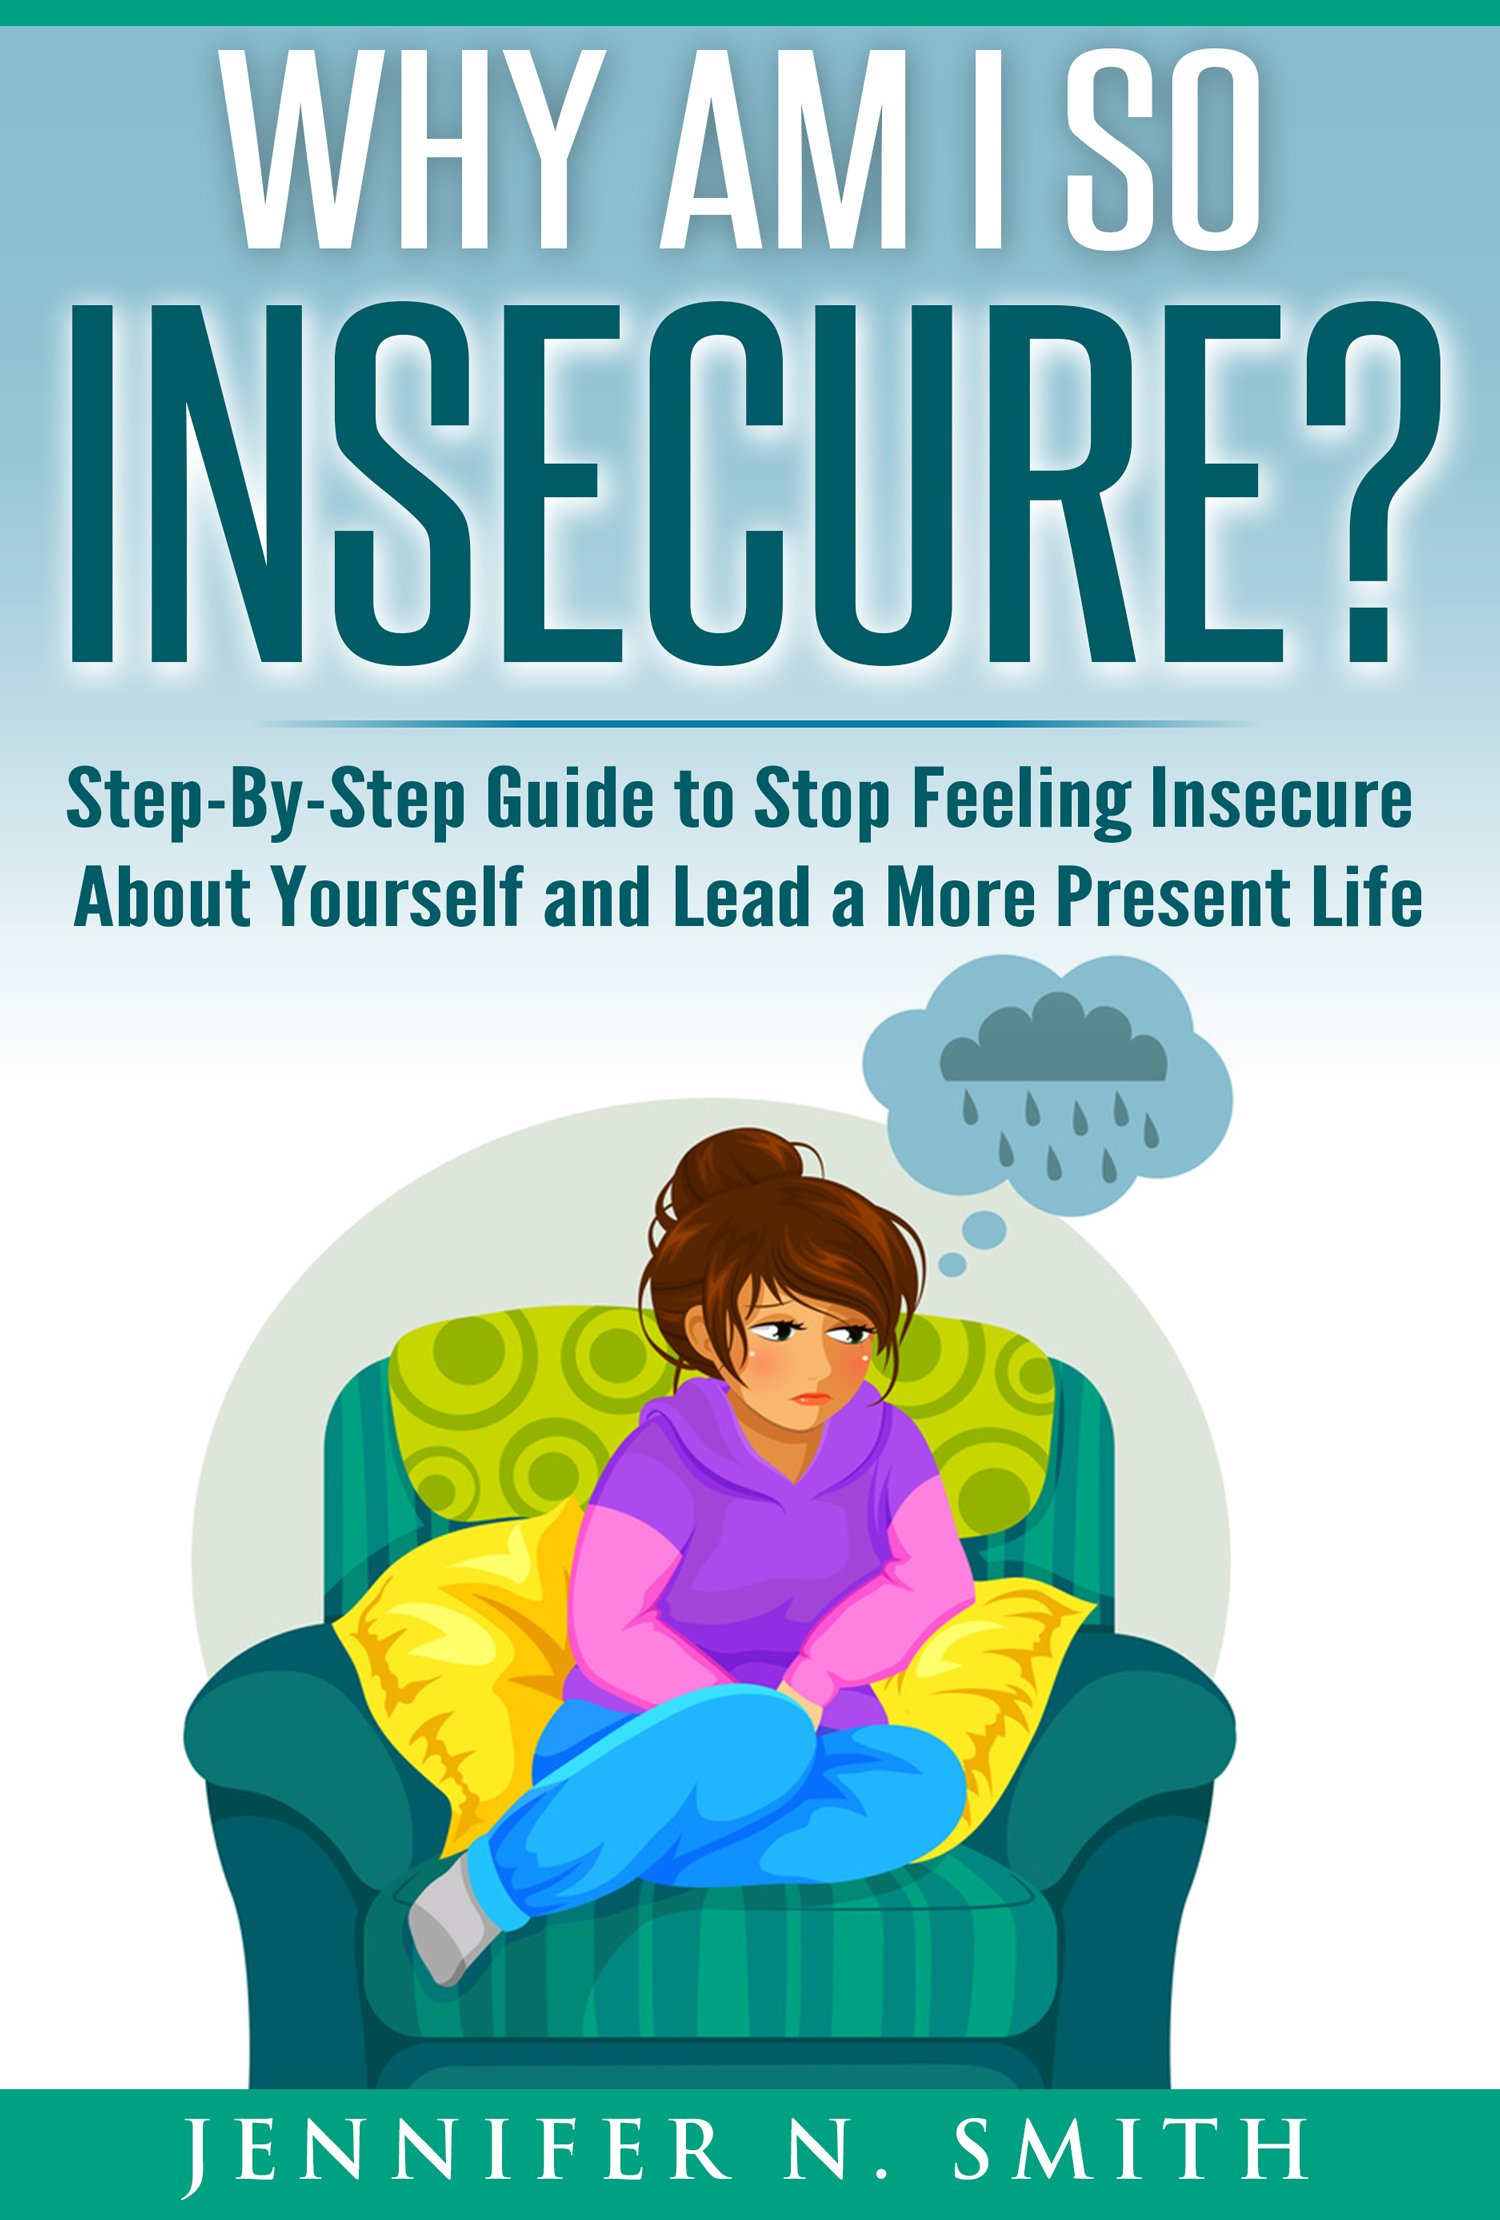 Anxiety Book: Why Am I So Insecure? Step-by-Step Guide to Stop Feeling Insecure About Yourself and Lead a More Present Life (Self Improvement Book 5)